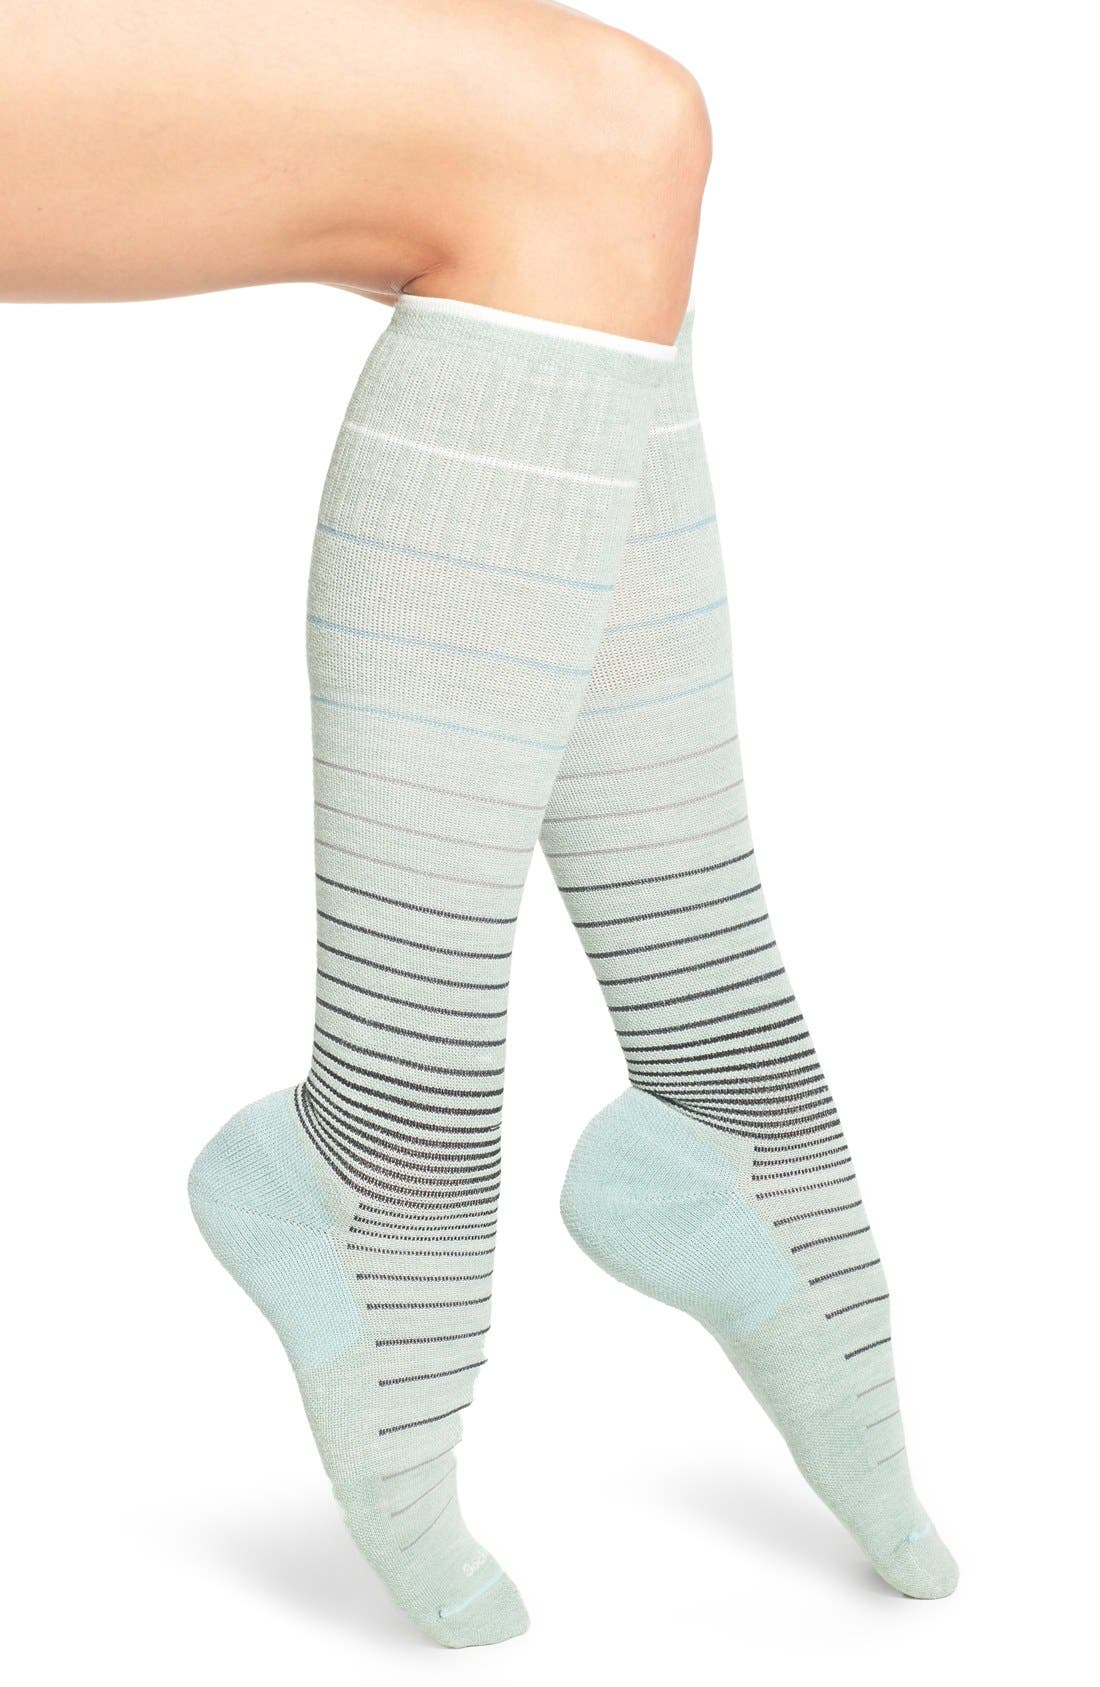 Sockwell Goodhew - Circulator Compression Socks